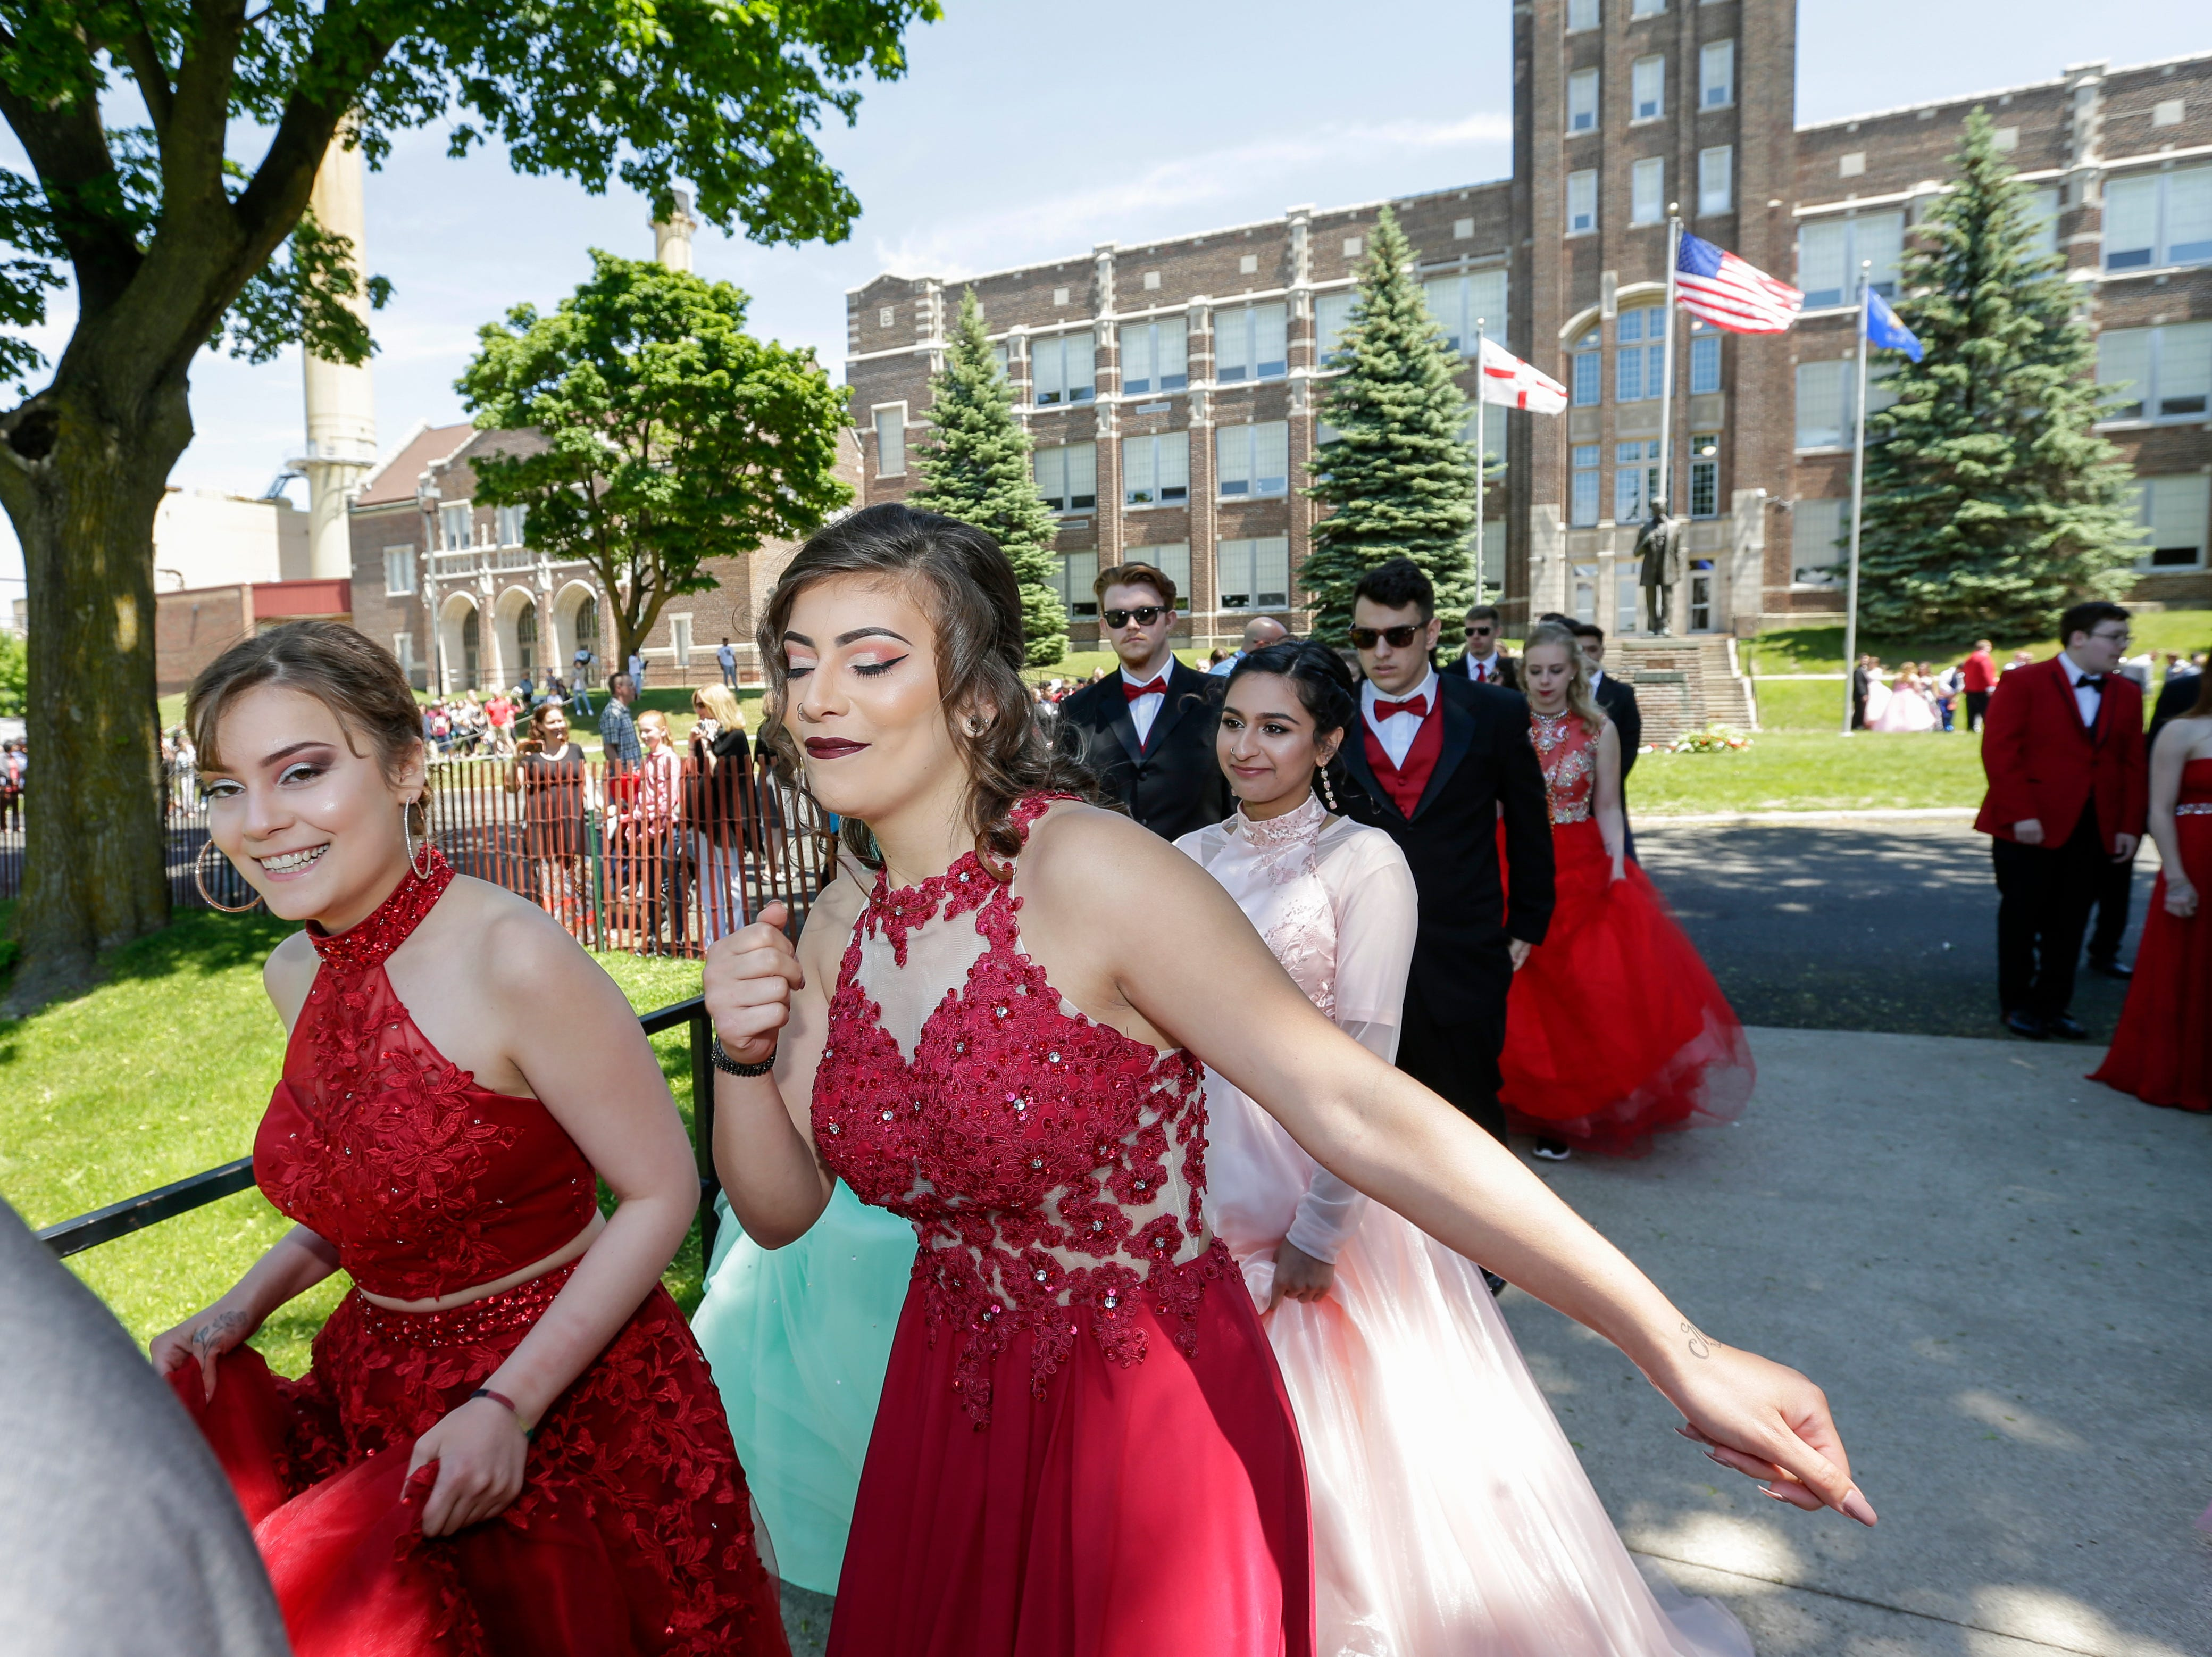 Cheyene Medina, left, and her sister Lydia Medina dance down the stairs in the procession to the field for the graduation ceremony at Manitowoc Lincoln High School Friday, Jun 8, 2018, in Manitowoc, Wis. Josh Clark/USA TODAY NETWORK-Wisconsin